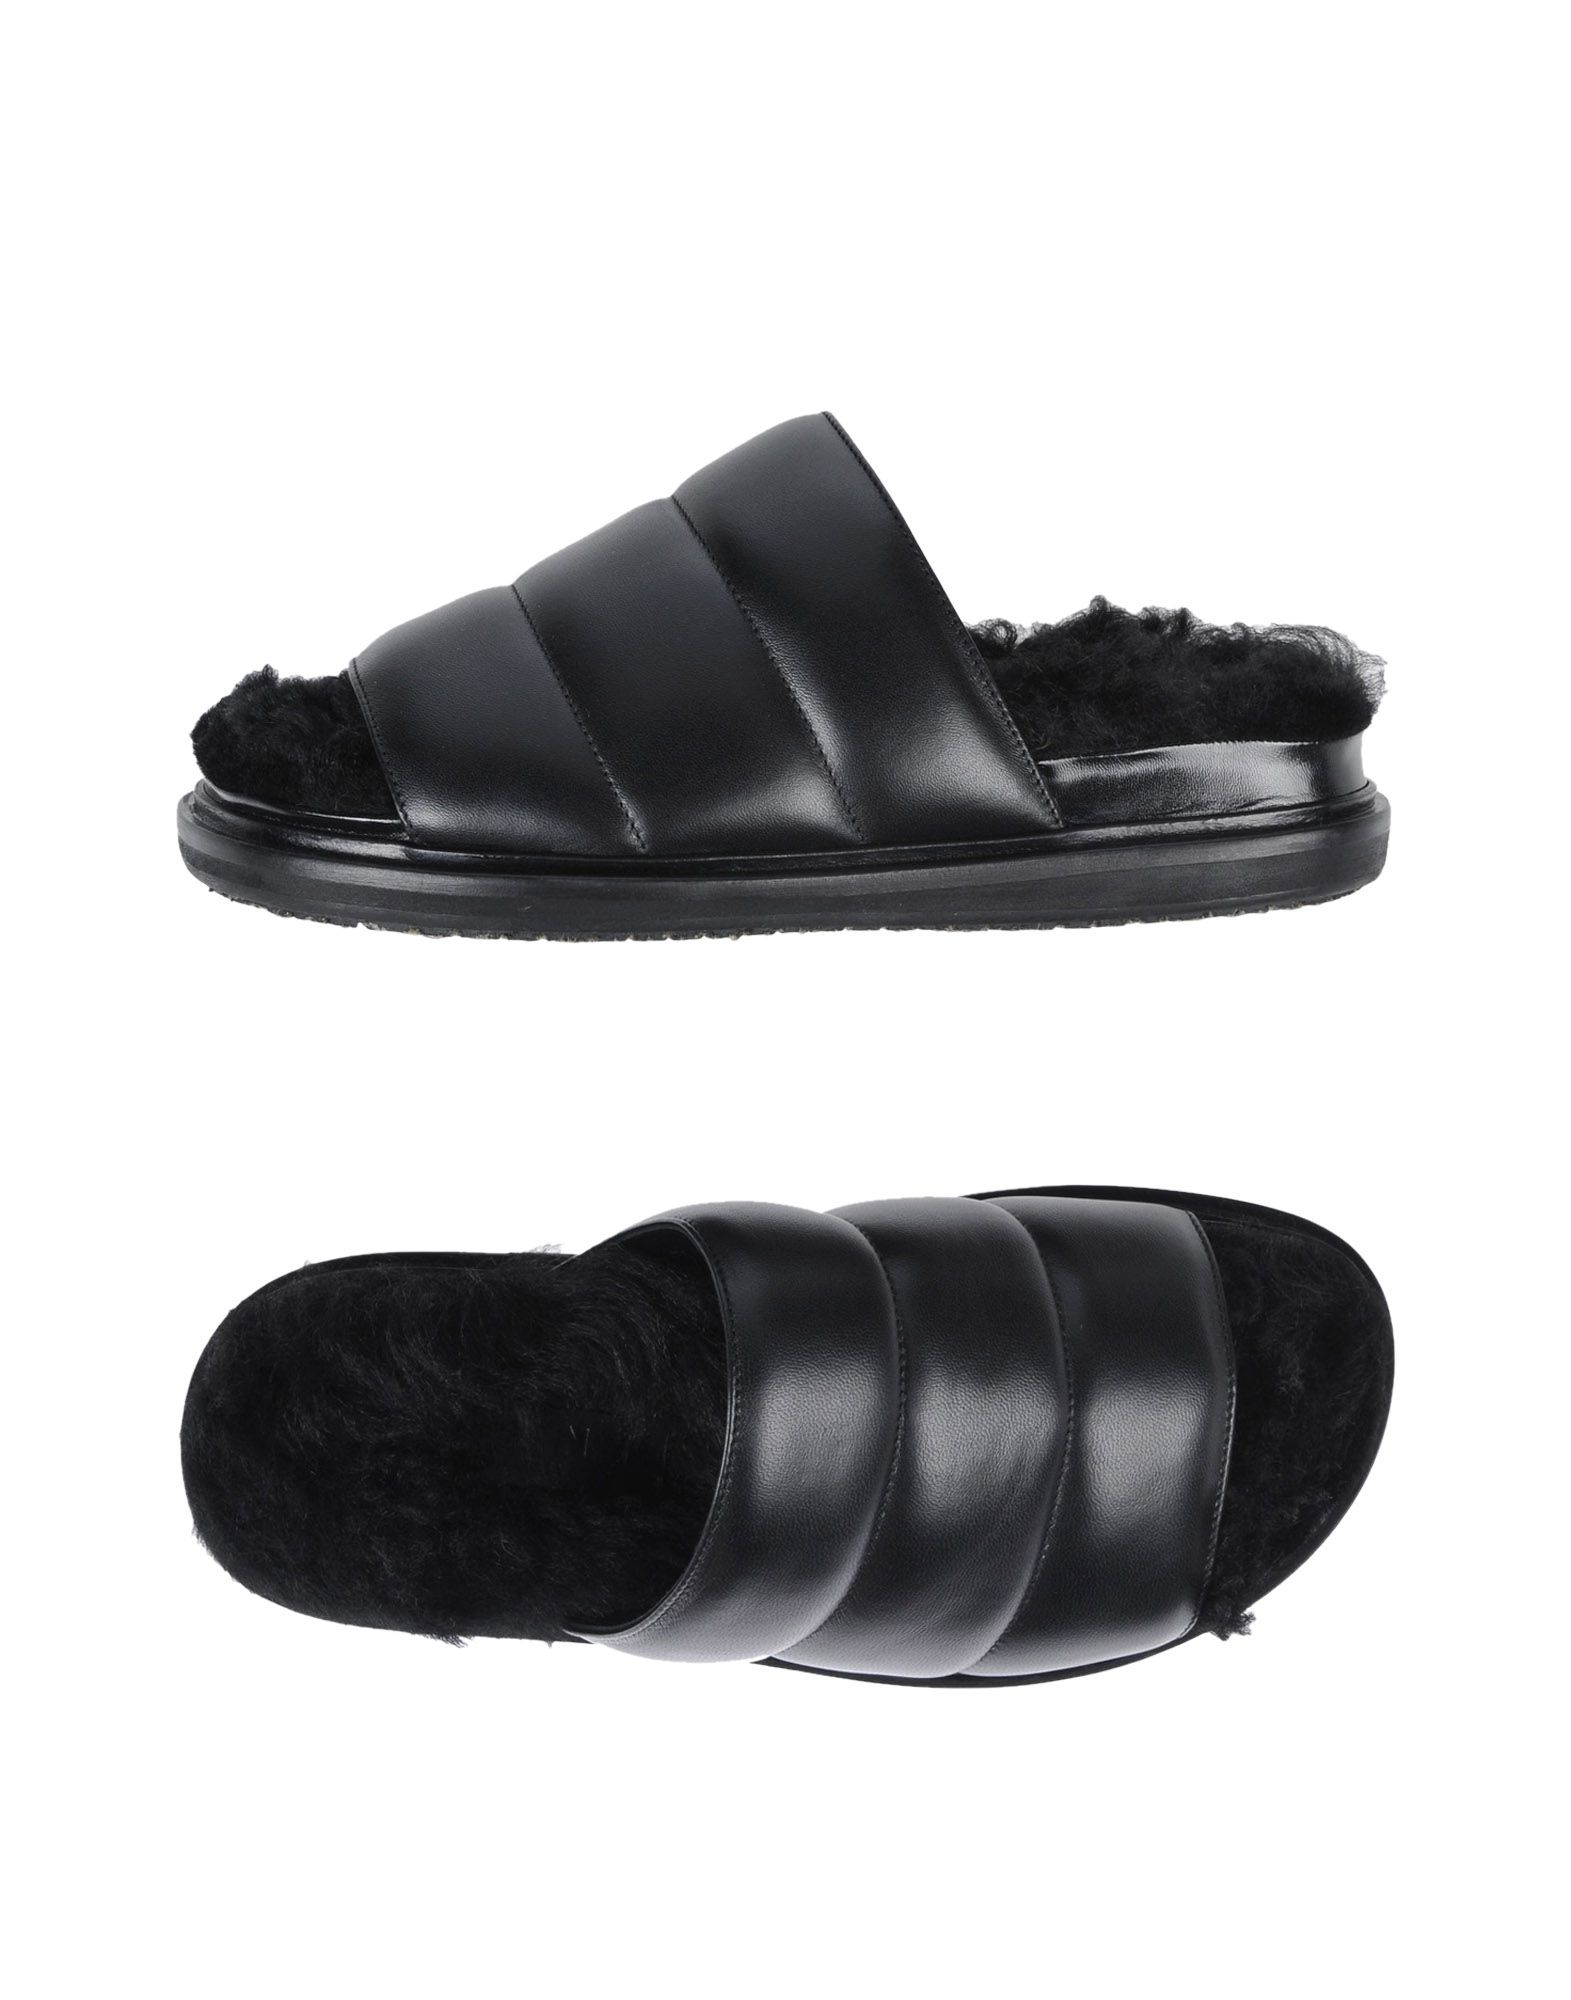 Marni Sandals Sandals - Women Marni Sandals Marni online on  Canada - 11475636DP 946129